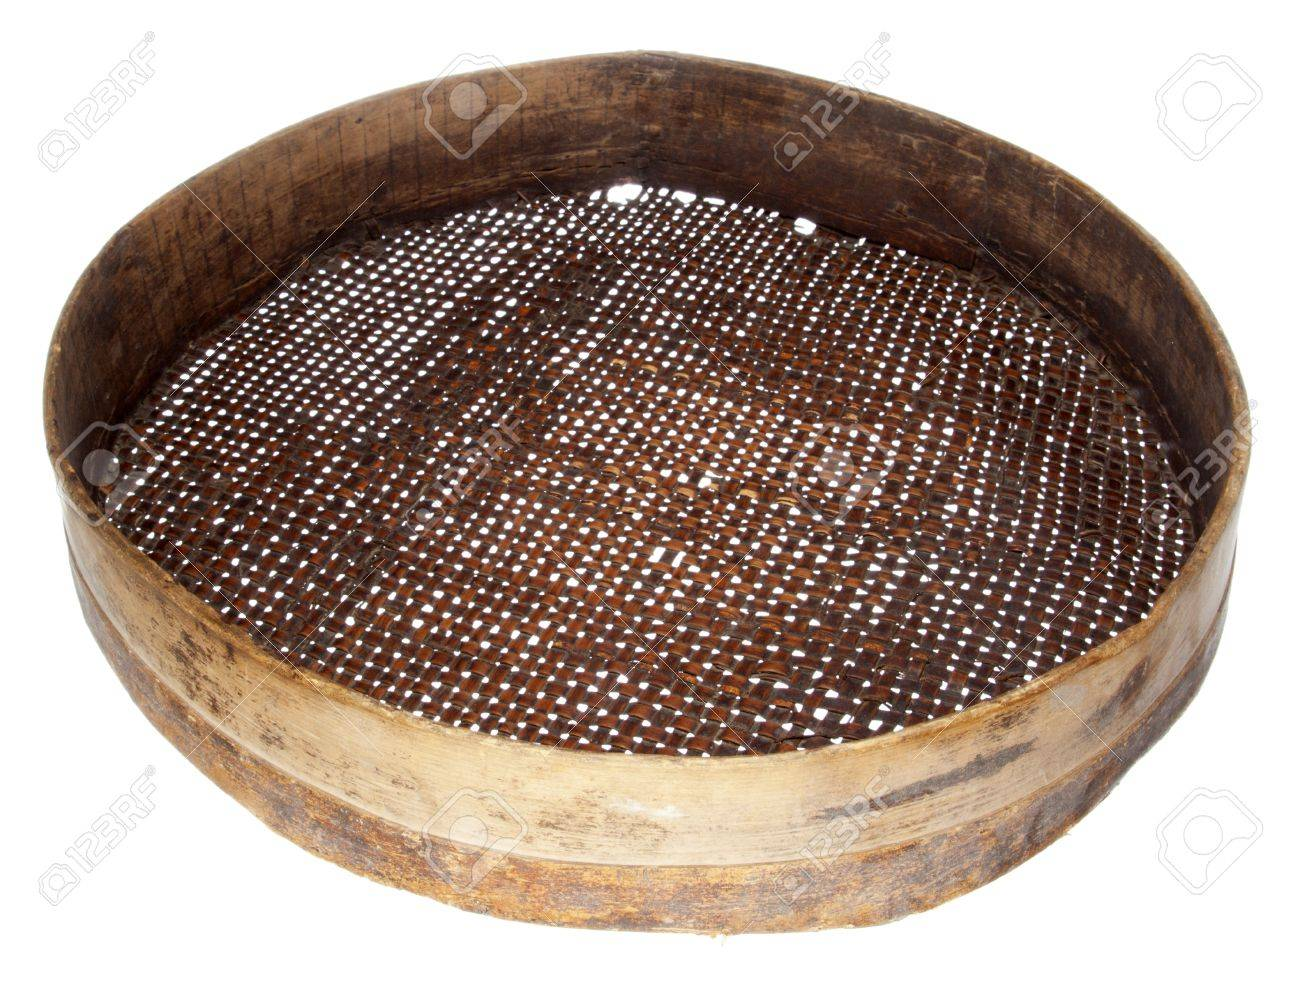 old wooden sieve isolated on white - 9849573